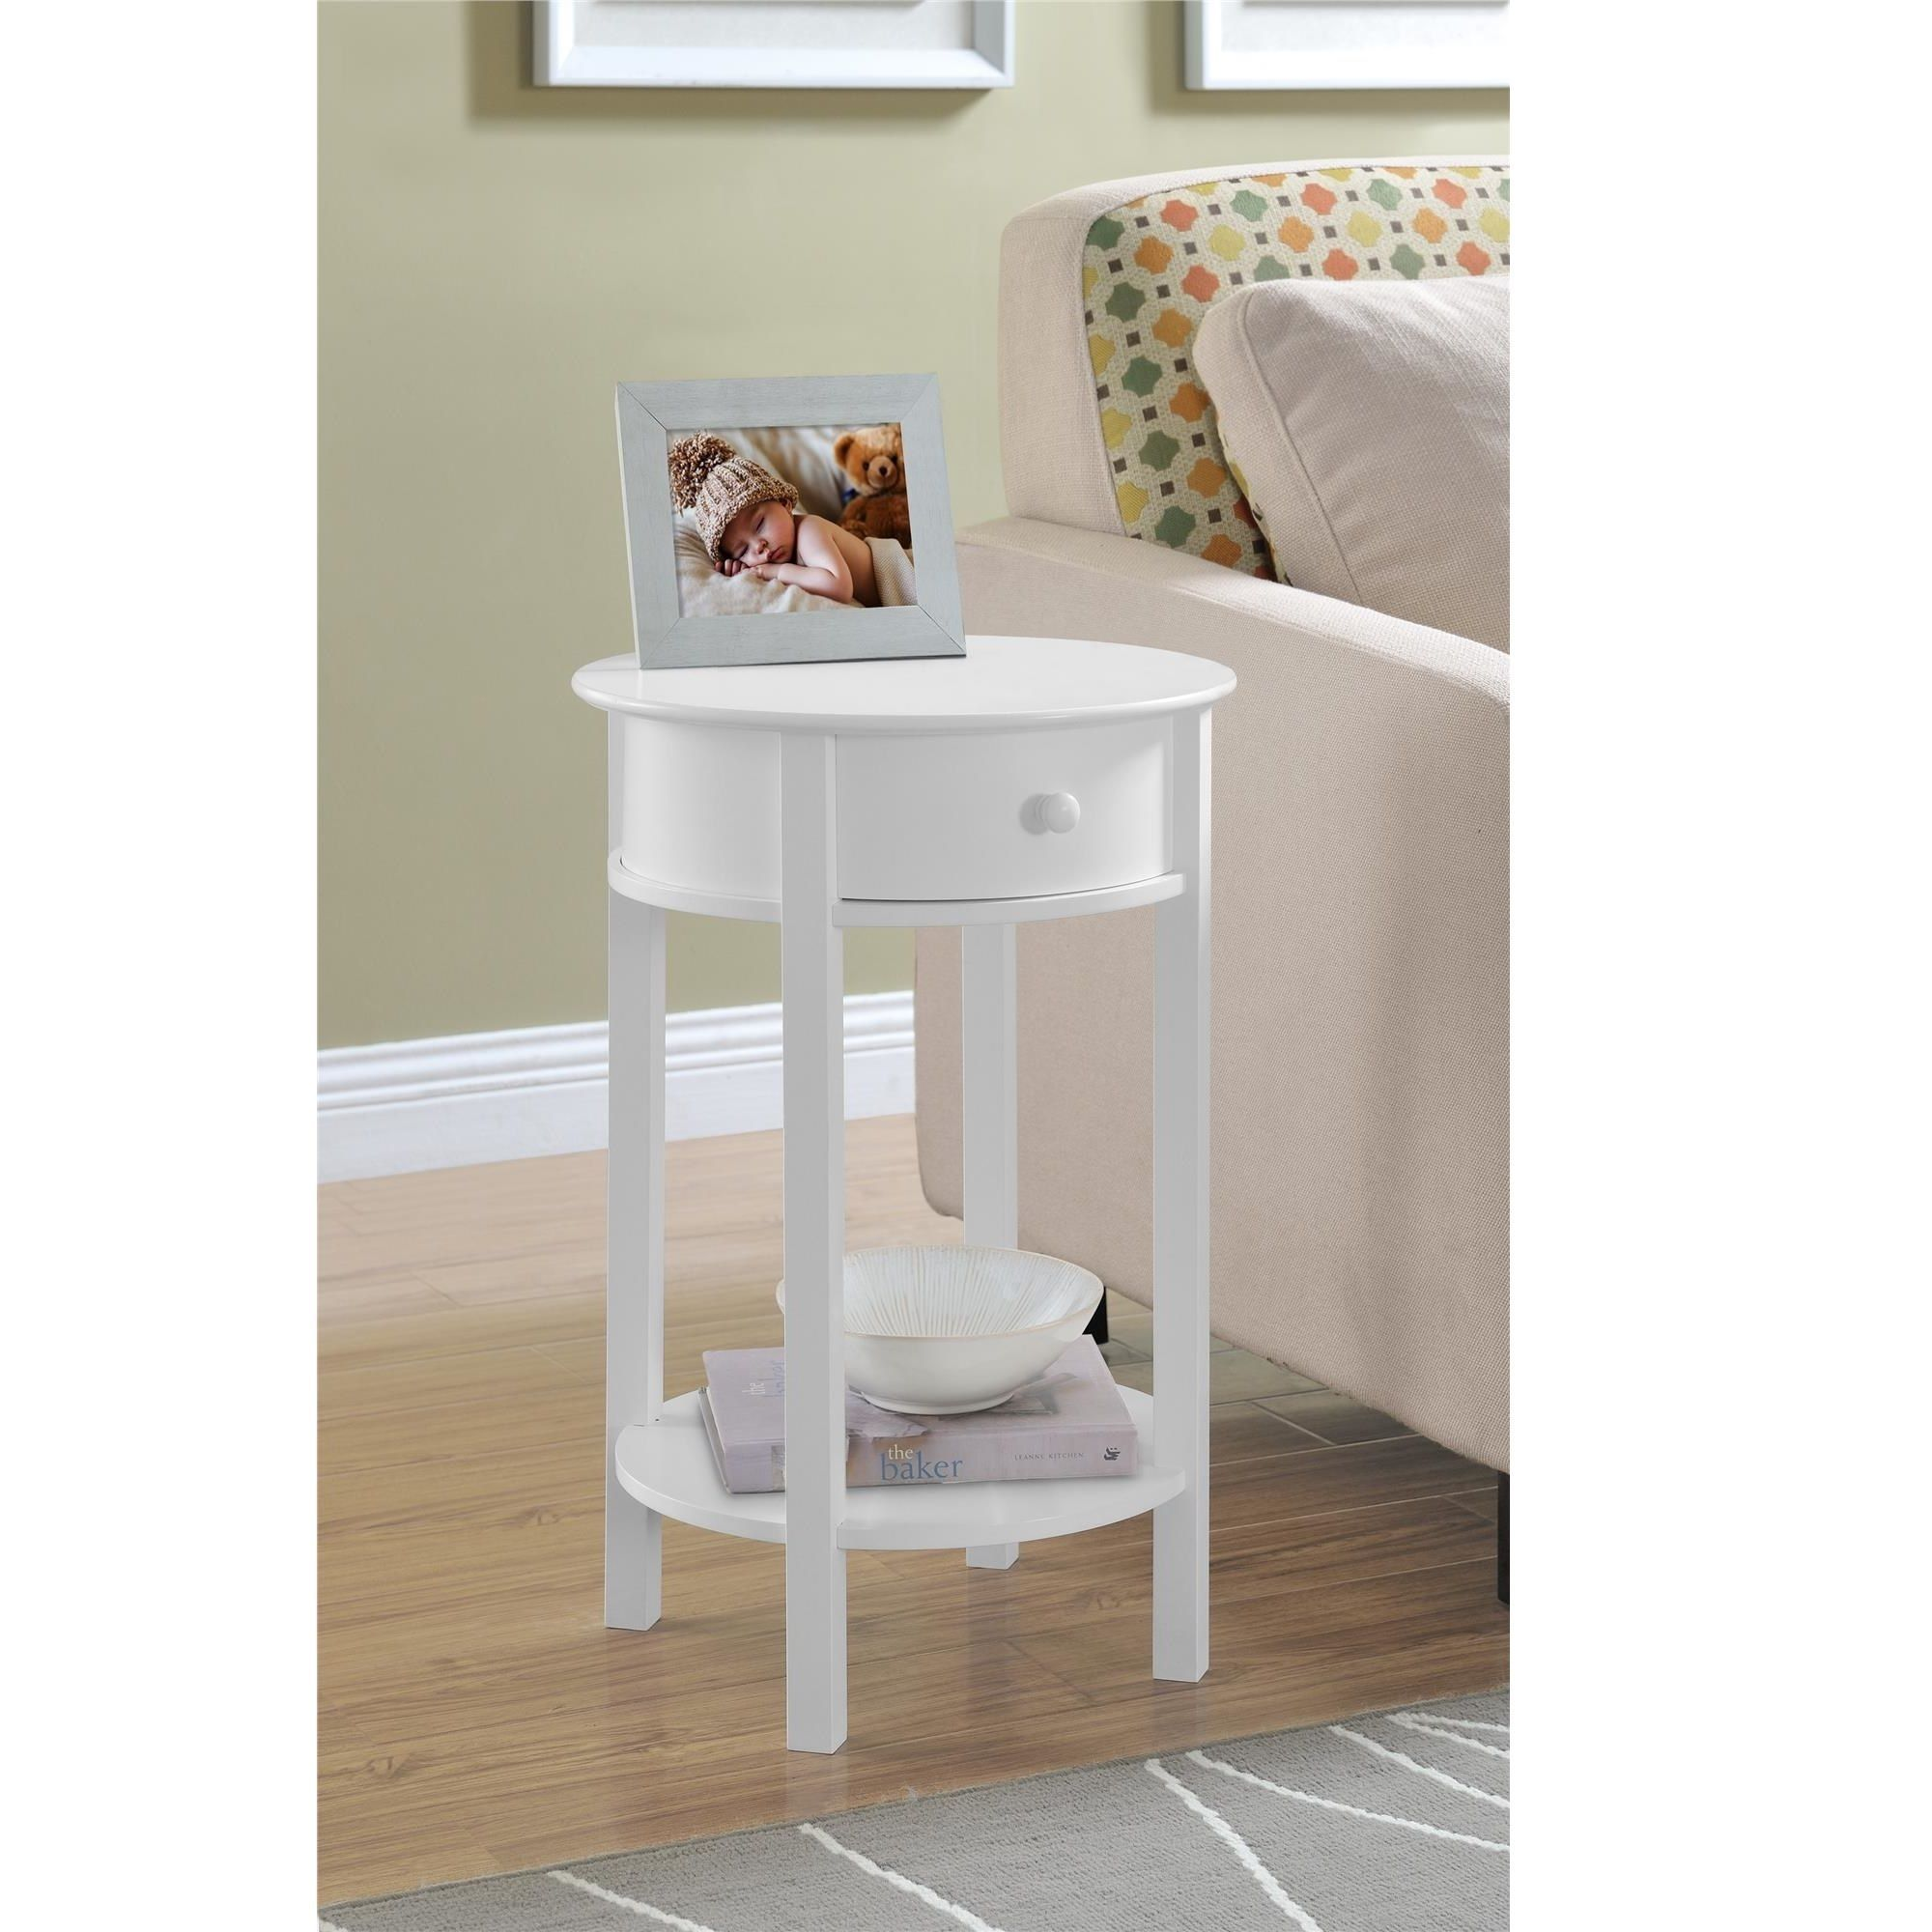 The Altra Furniture Round End Table Features A Small Drawer And Lower Shelf For Storage Is Designed In Beautiful Painted White Finish To Enhance Your